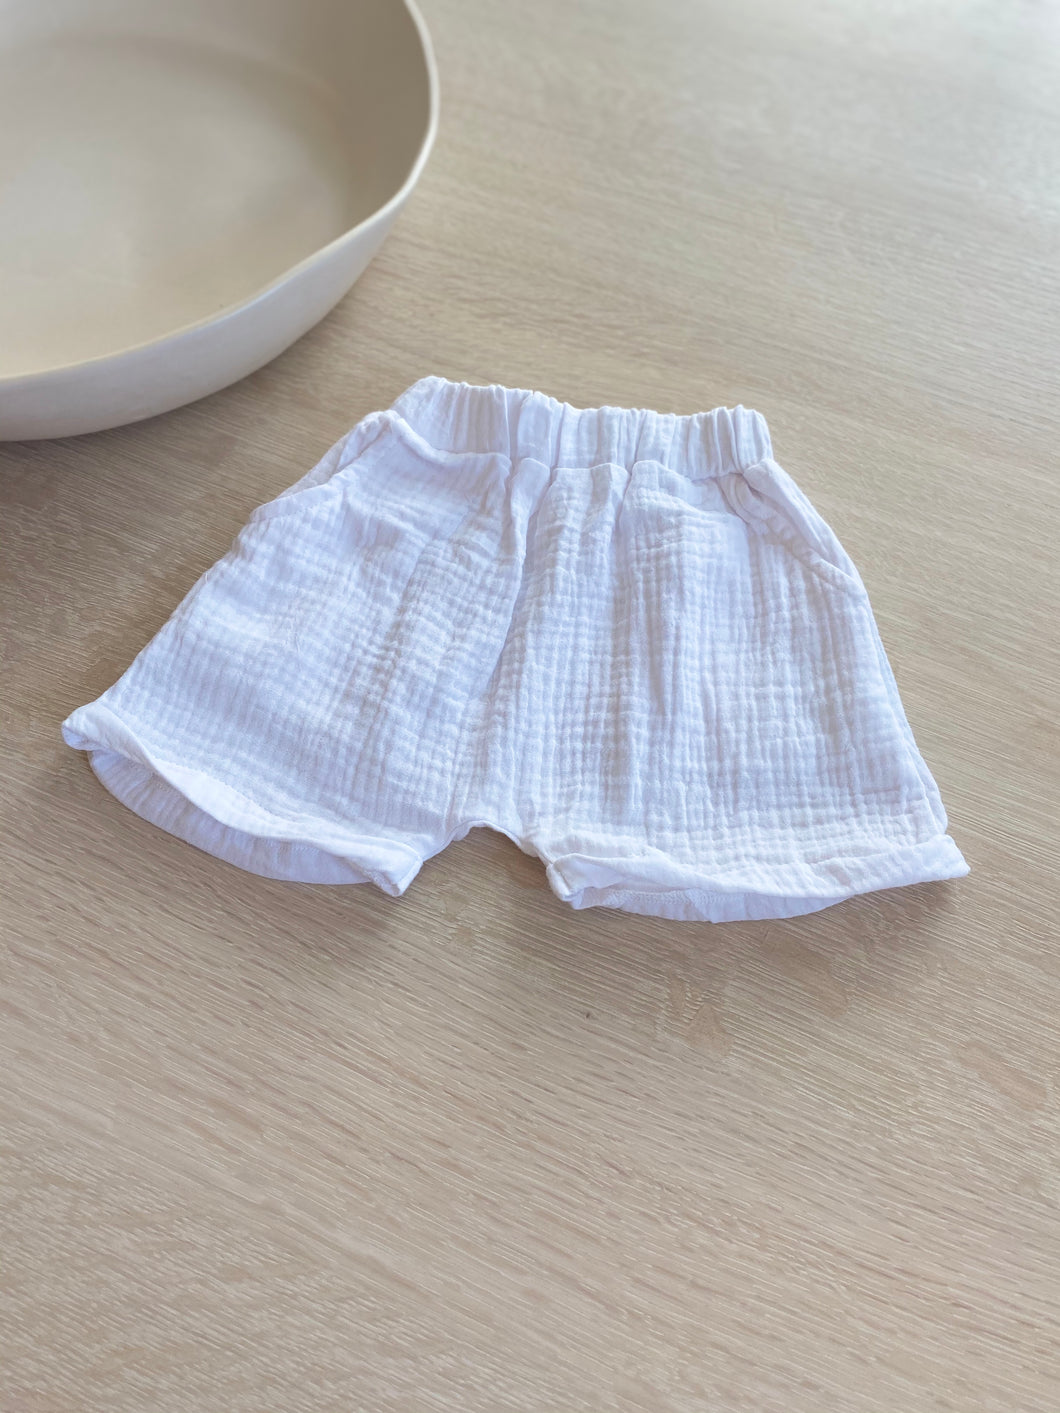 JAMES SHORTS - Linen Michael